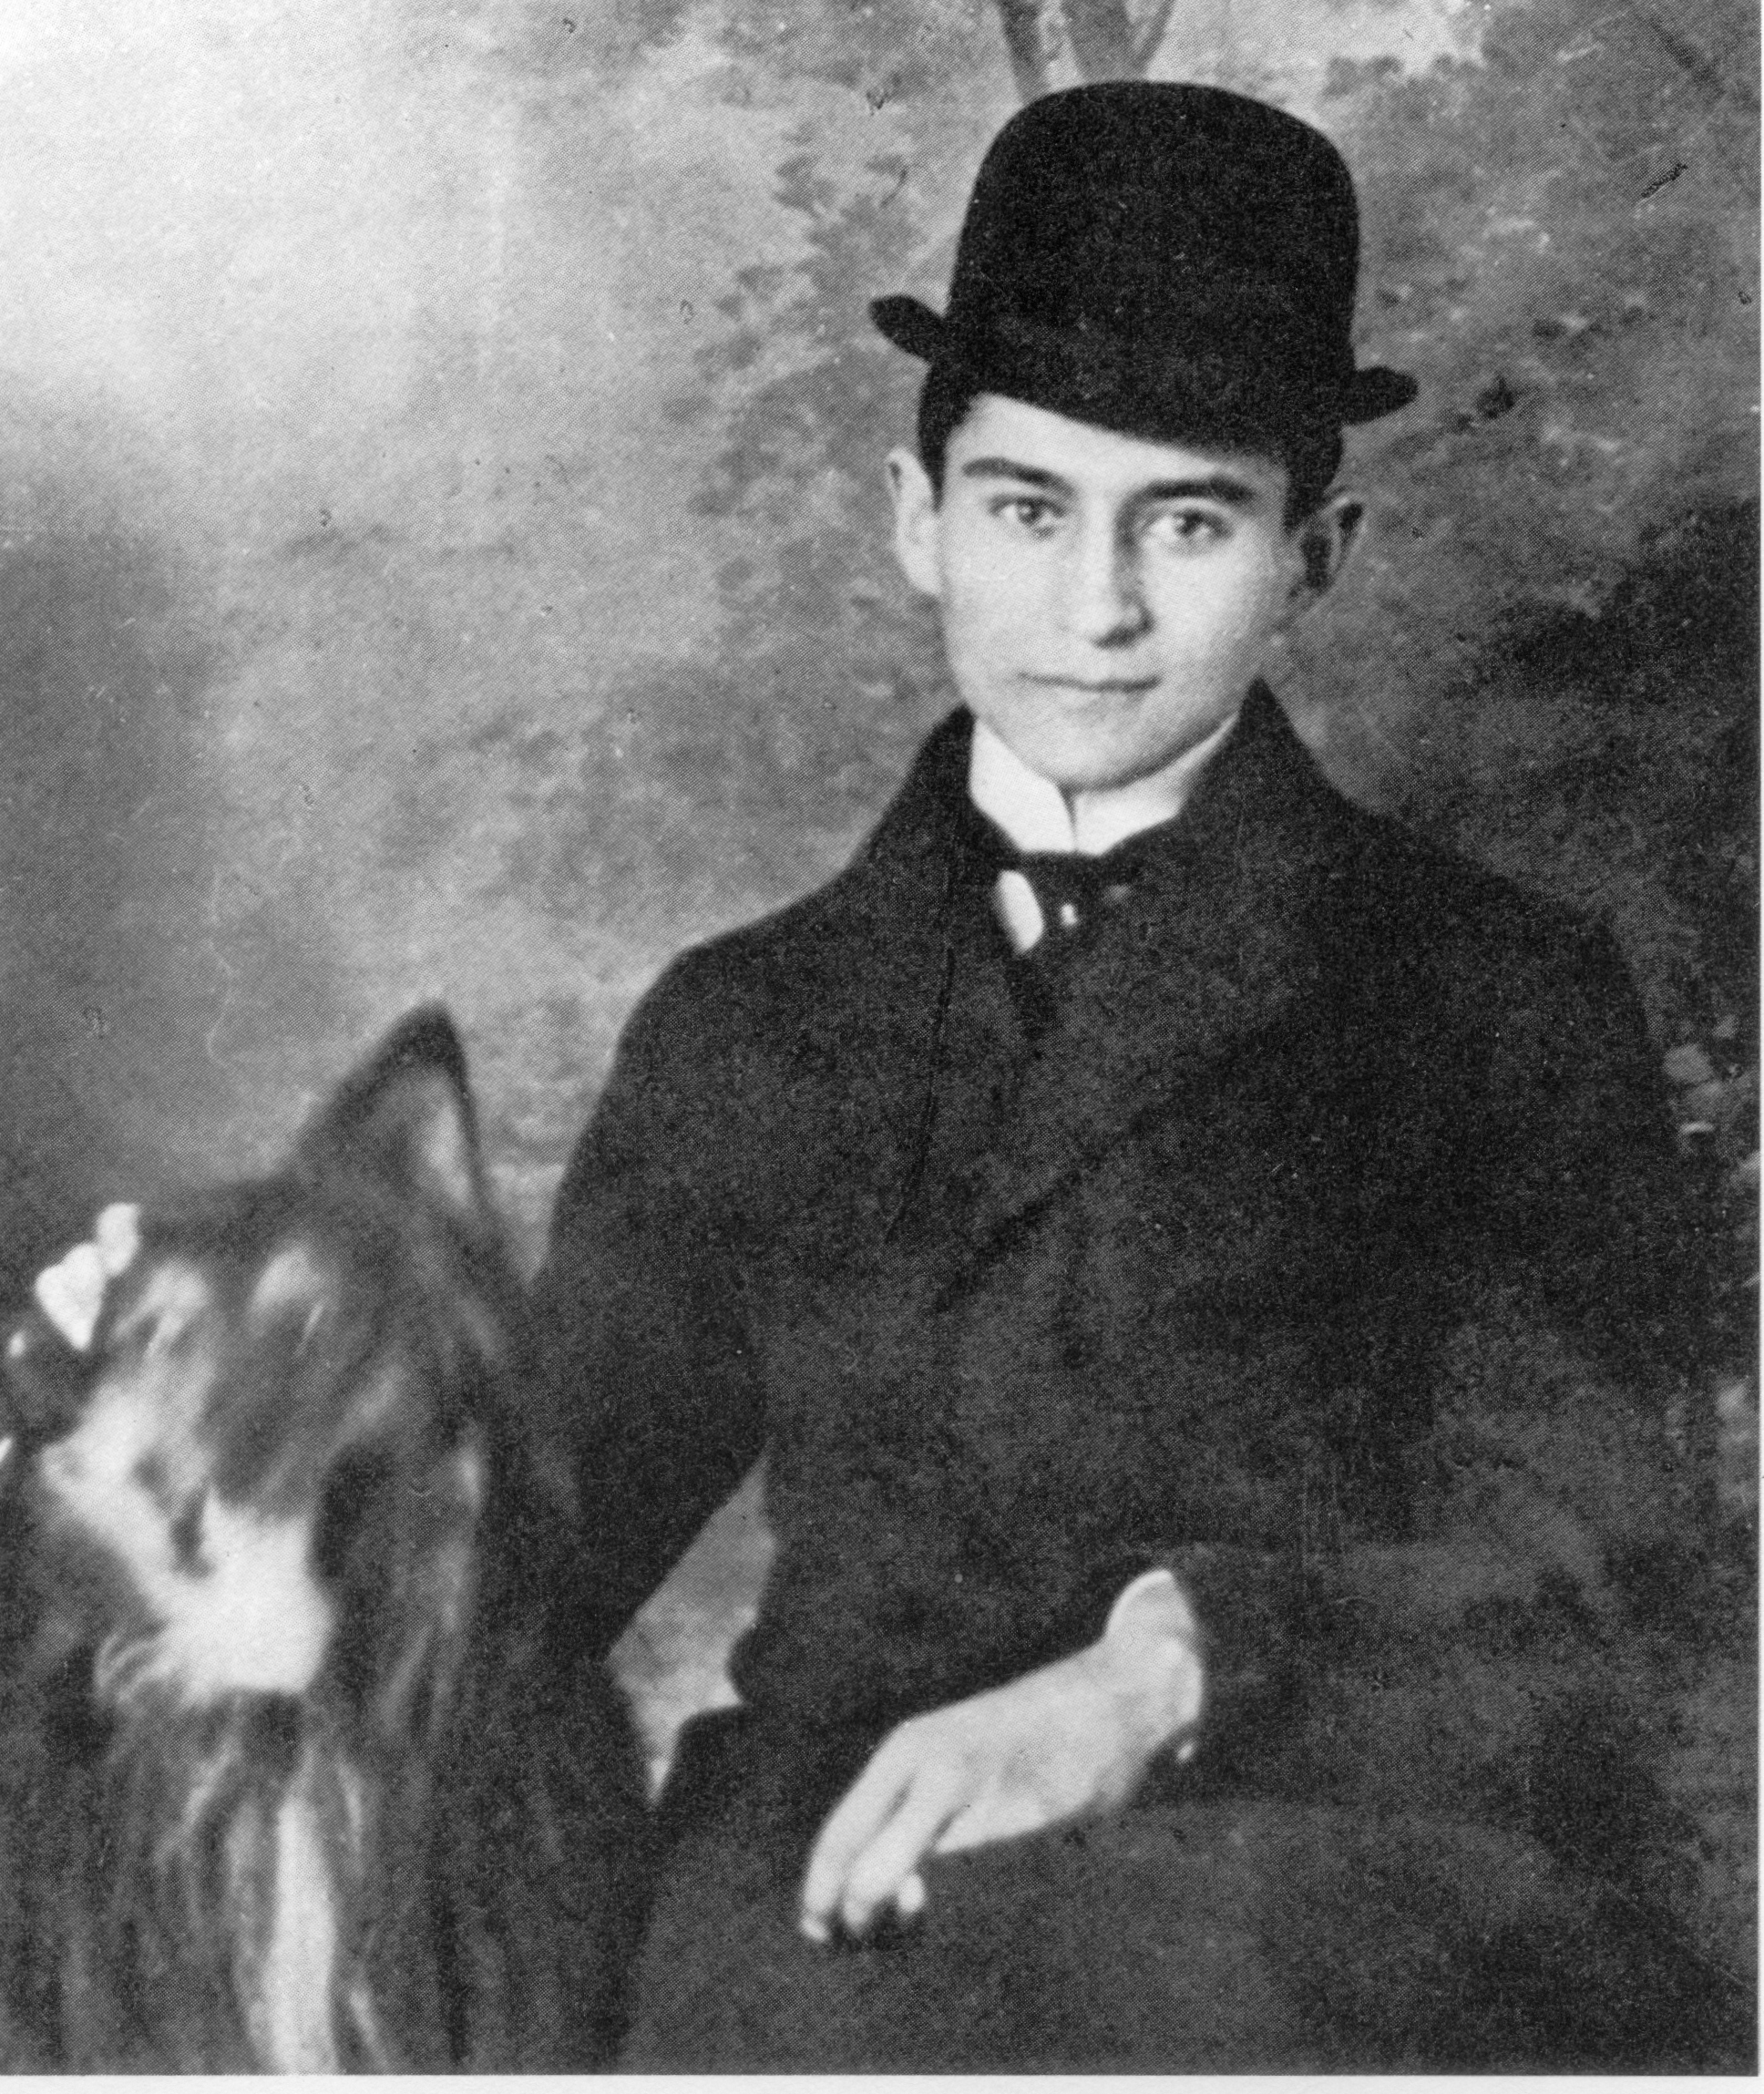 franz kafka No one sings as purely as those who inhabit the deepest hell—what we take to  be the song of angels is their song - franz kafka, 1920.